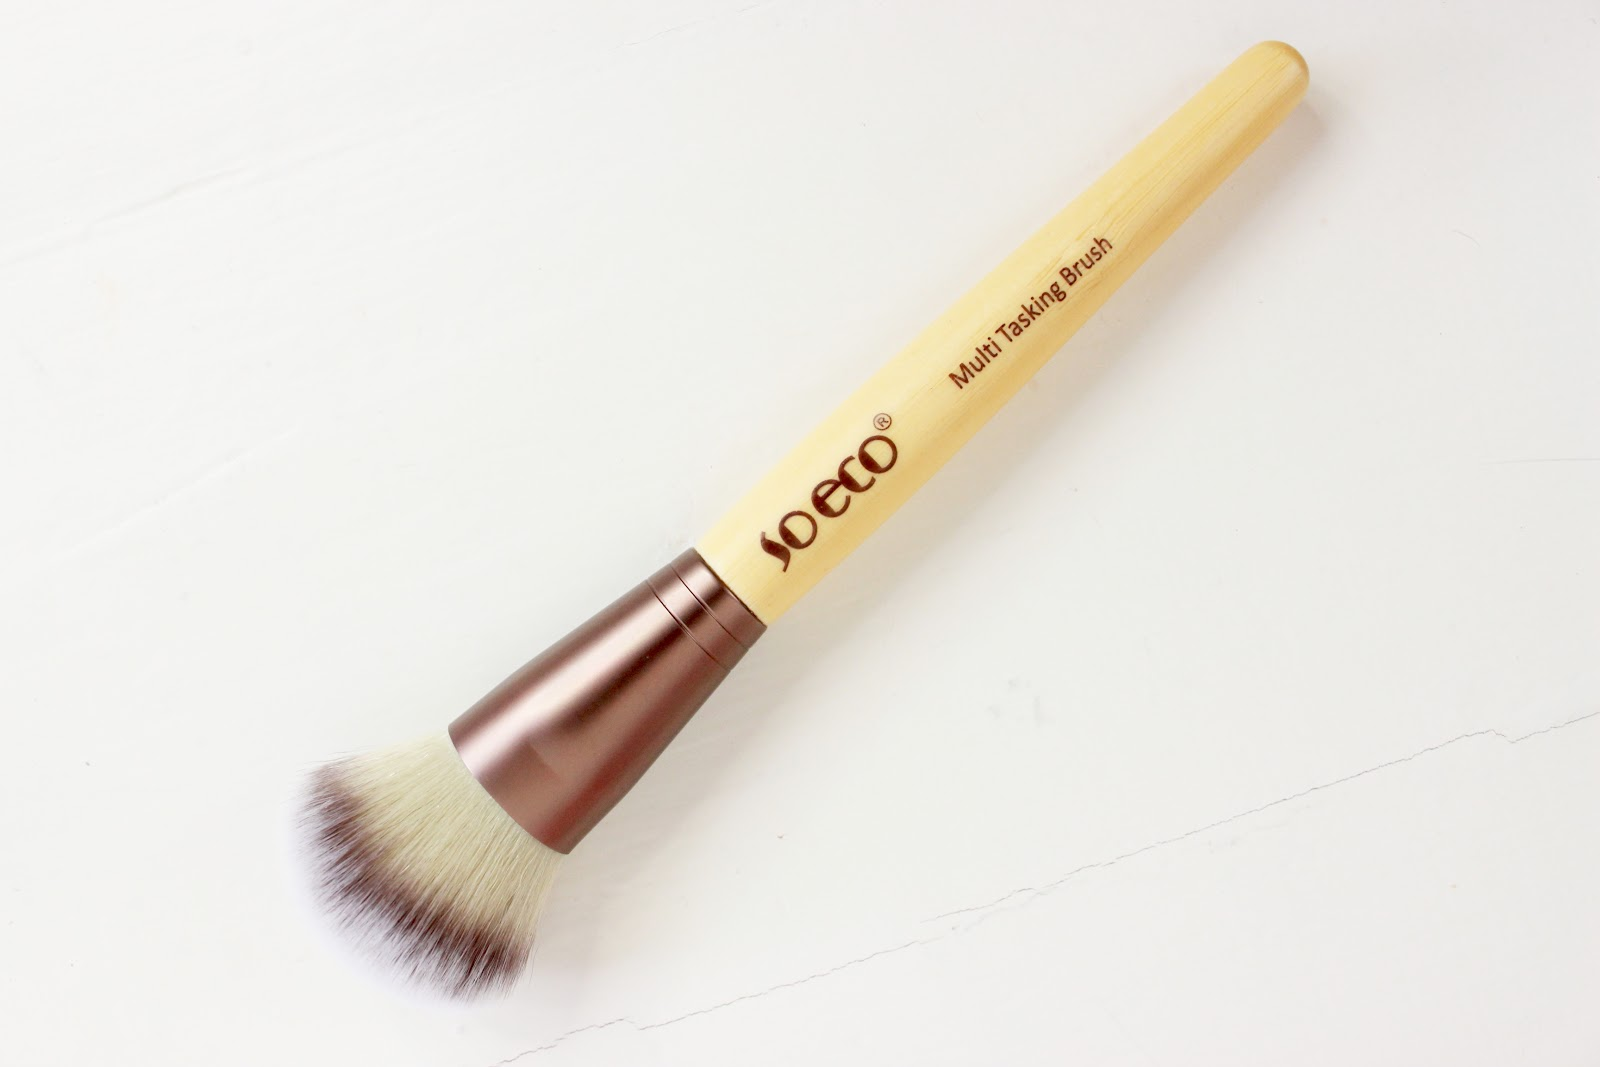 So Eco Multi Tasking Makeup Brush